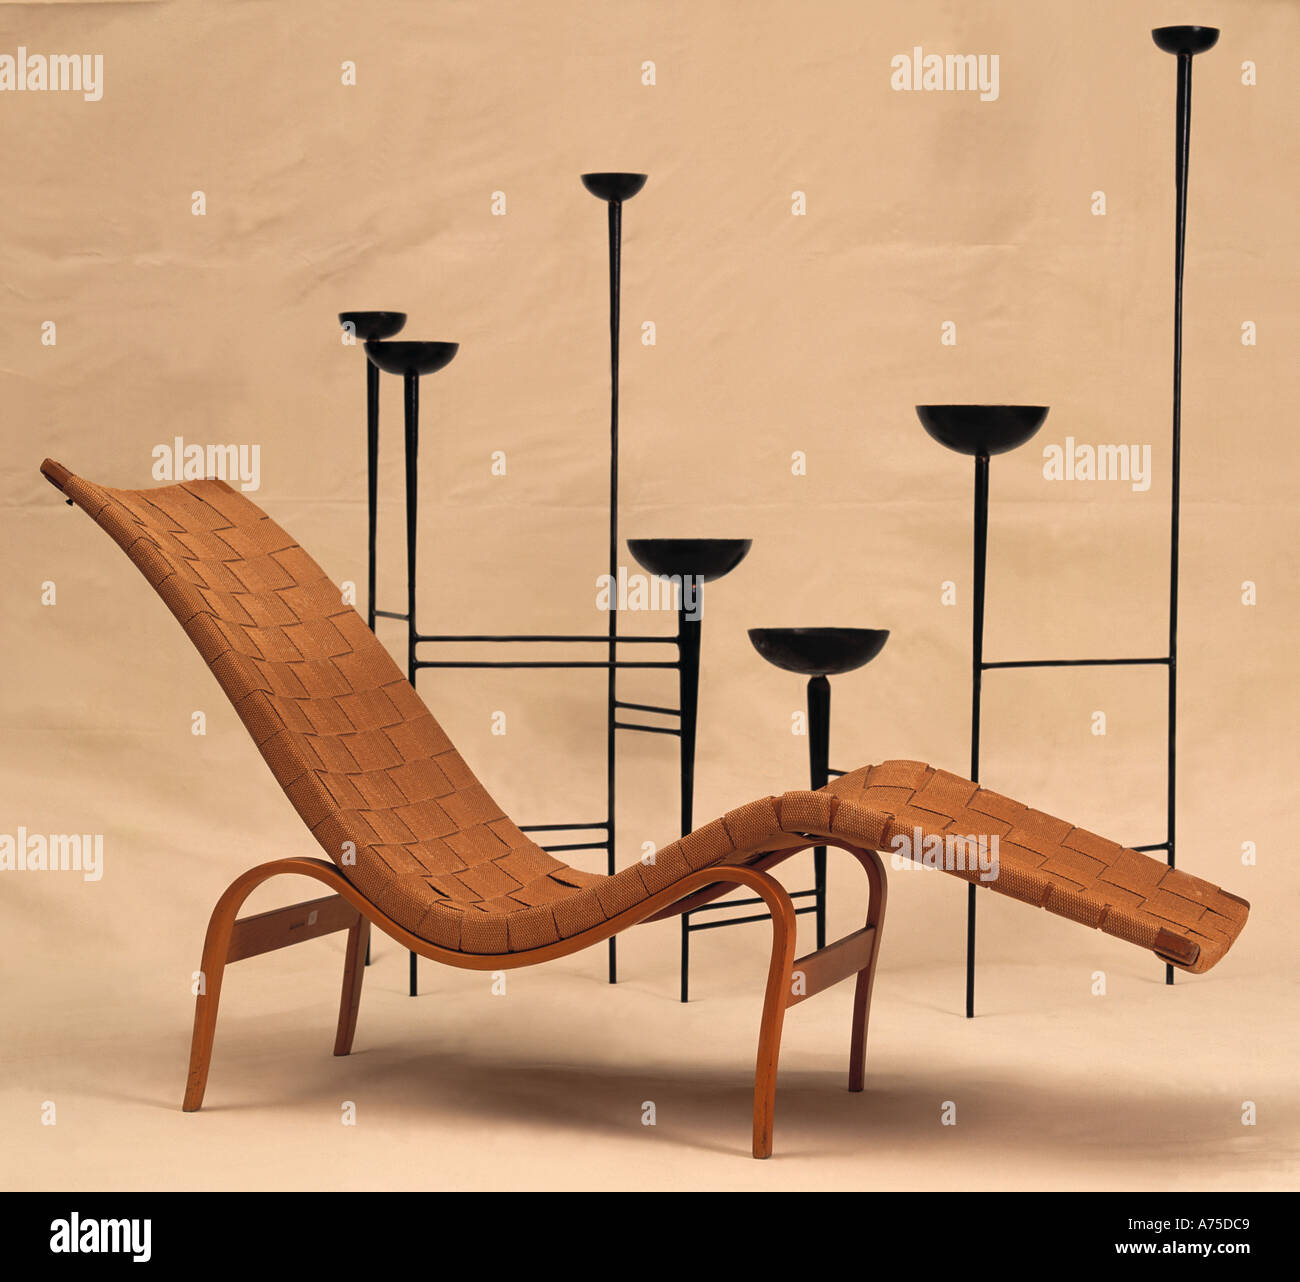 Mid Century Modern Woven Leather Chaise Longue With Tall Wrought Iron Candlesticks